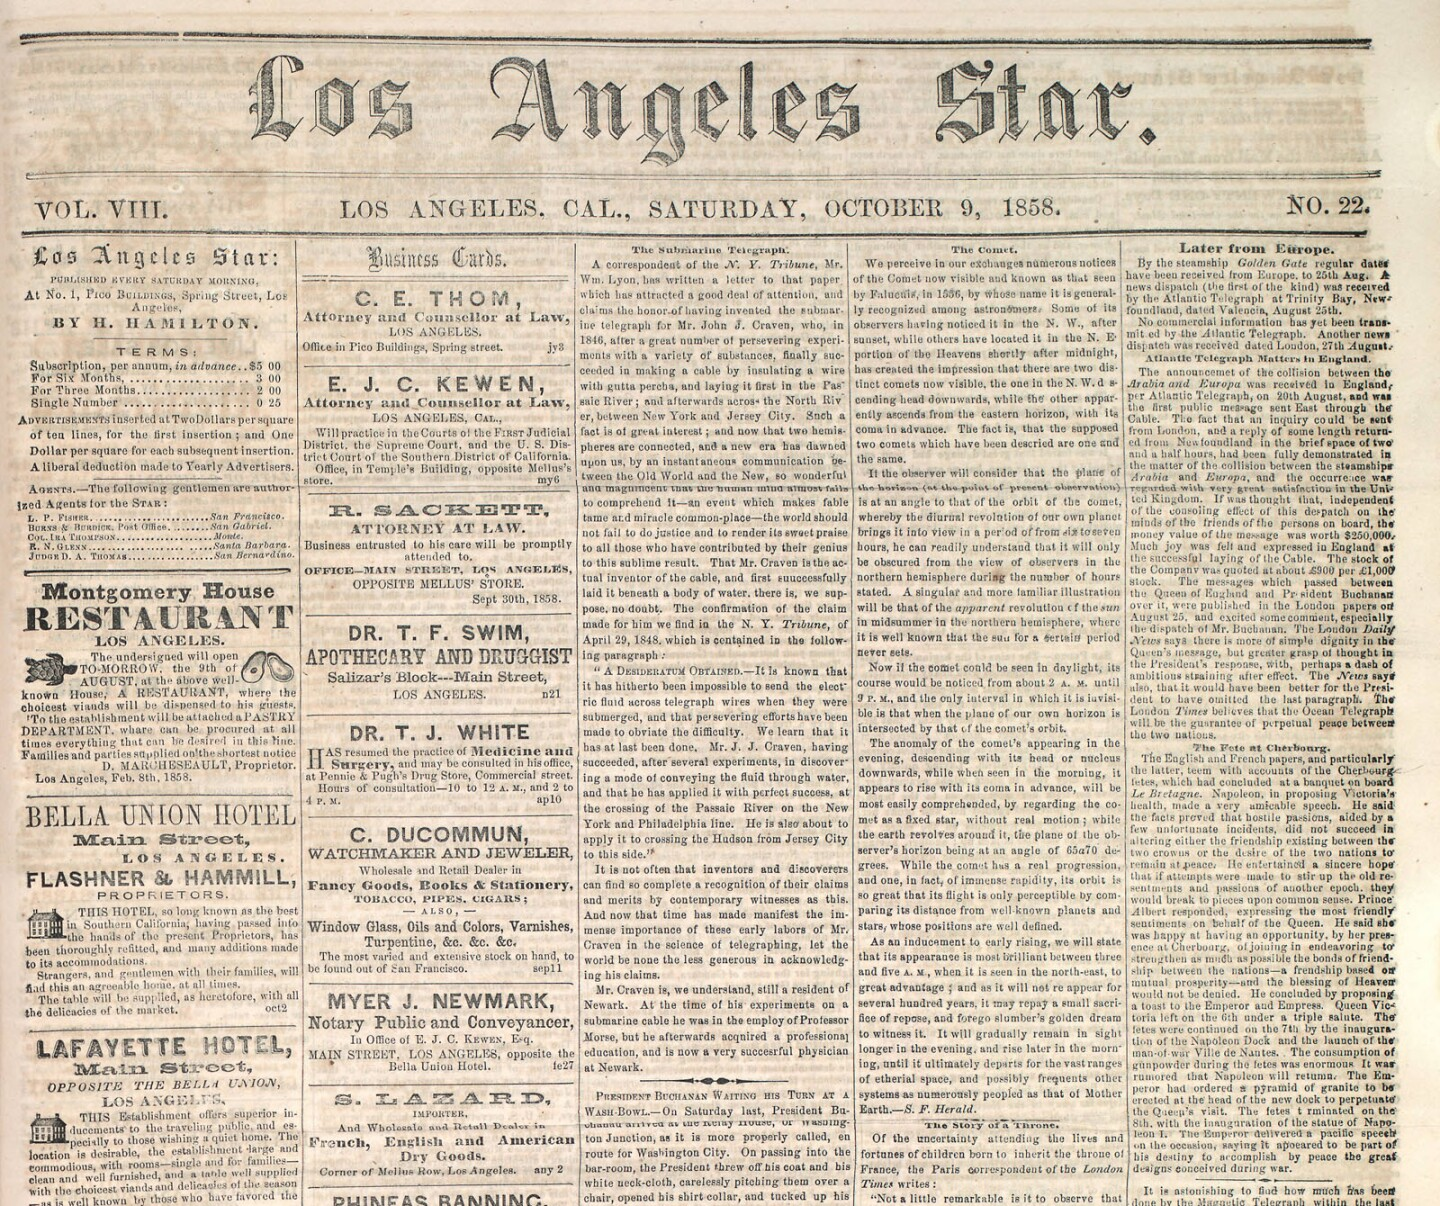 This edition of the Los Angeles Star helped researchers rediscover a rare Southland hurricane that time had forgotten.